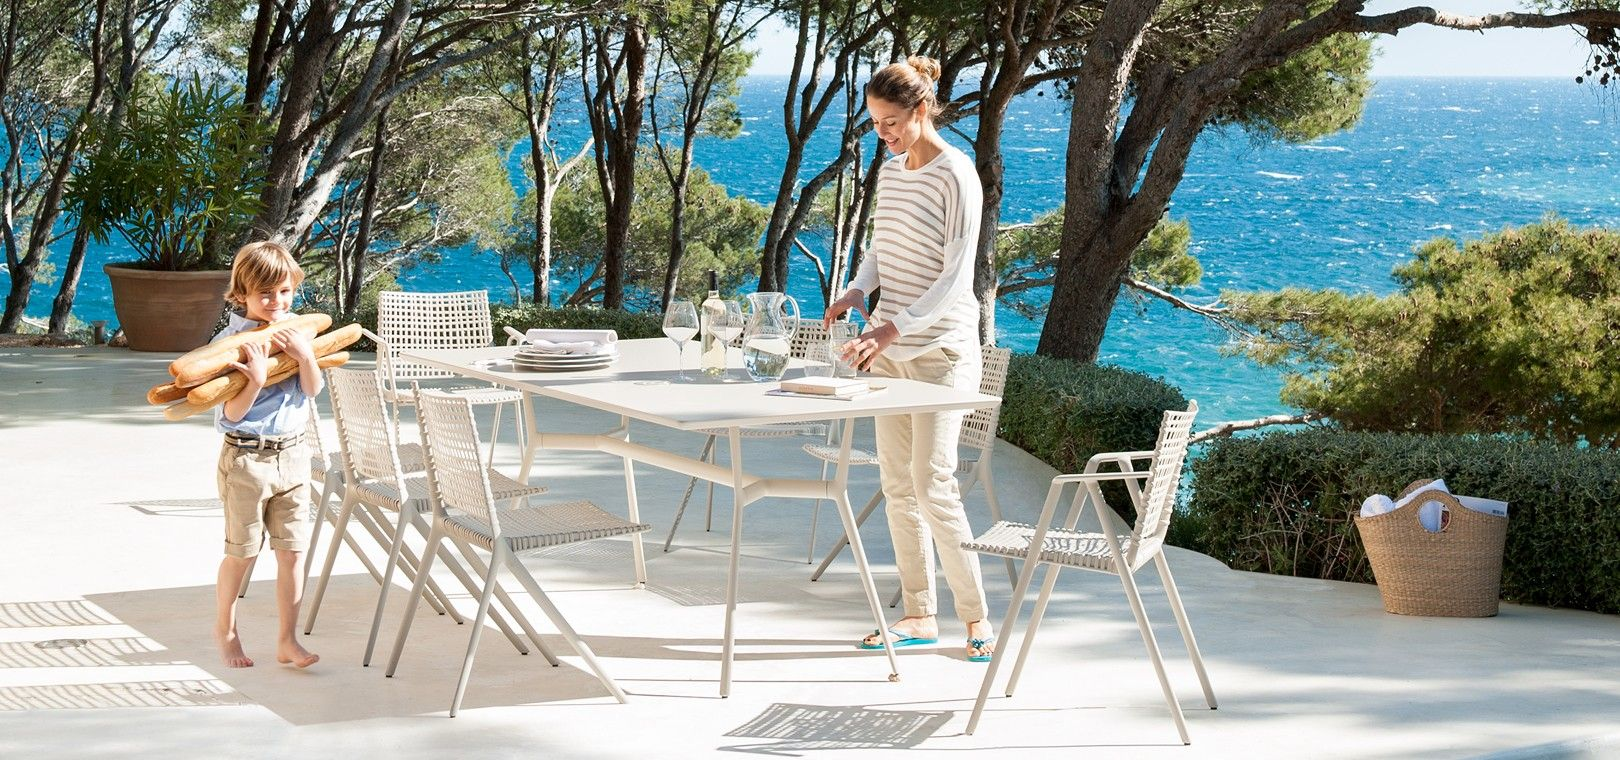 ... Of Aluminium Outdoor Furniture That Consists Of Two Garden Chairs, A  Rectangular Outdoor Table And Two Bistro Tables, Designed By Lievore  Altherr Molina